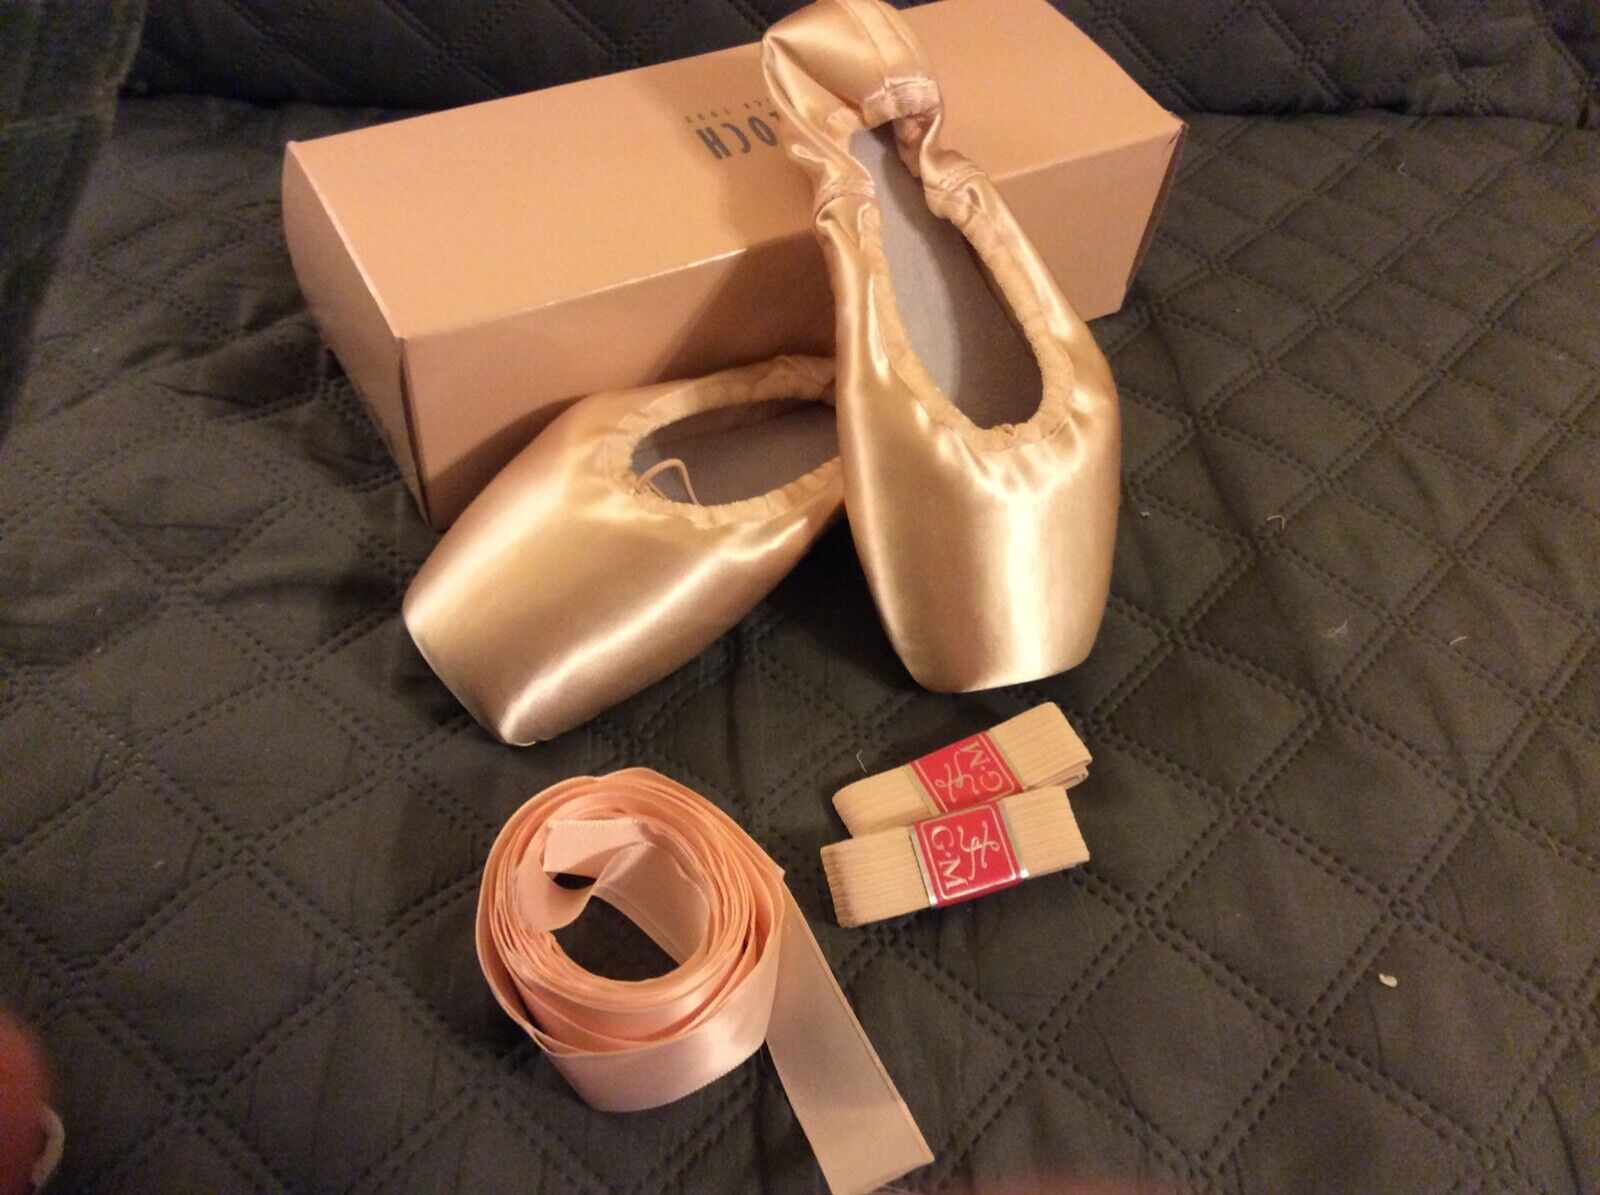 NEW In BOX BLOCH EUROPEAN BALANCE Ballet Pointe Toe Shoes Size 4.5 X - $29.99